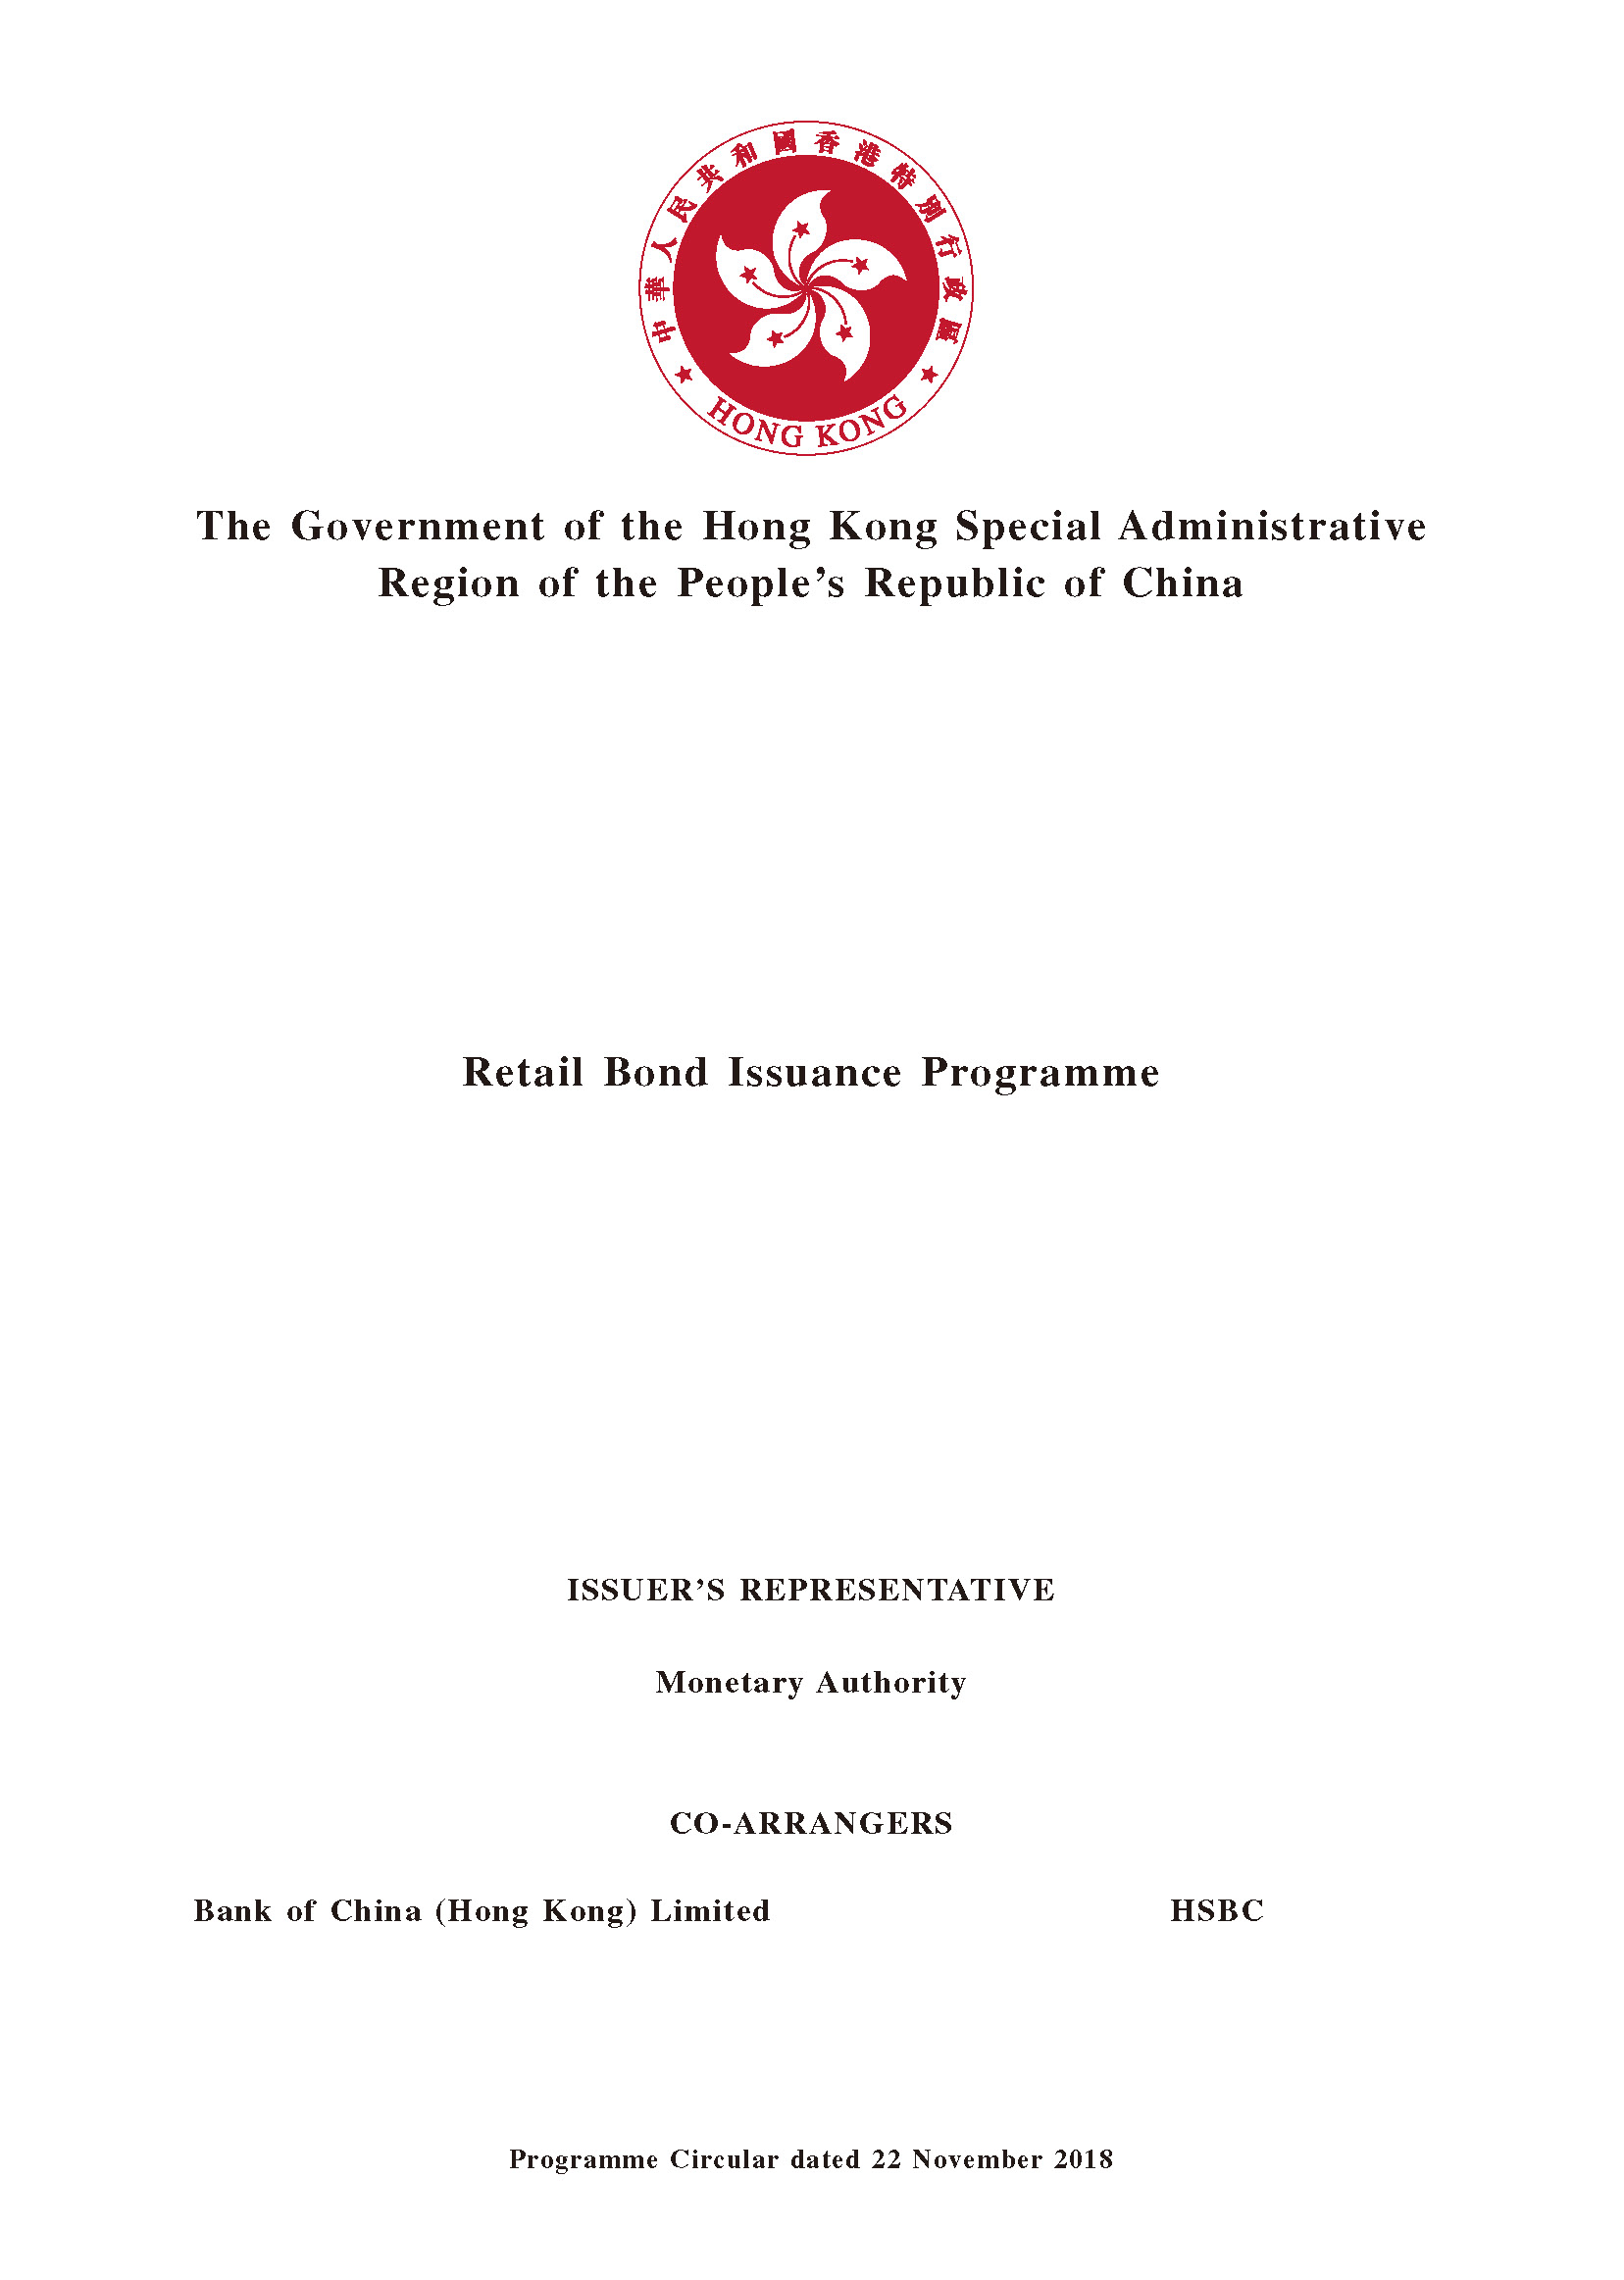 The Government of the Hong Kong Special Administrative Region of the People's Republic of China – Programme Circular